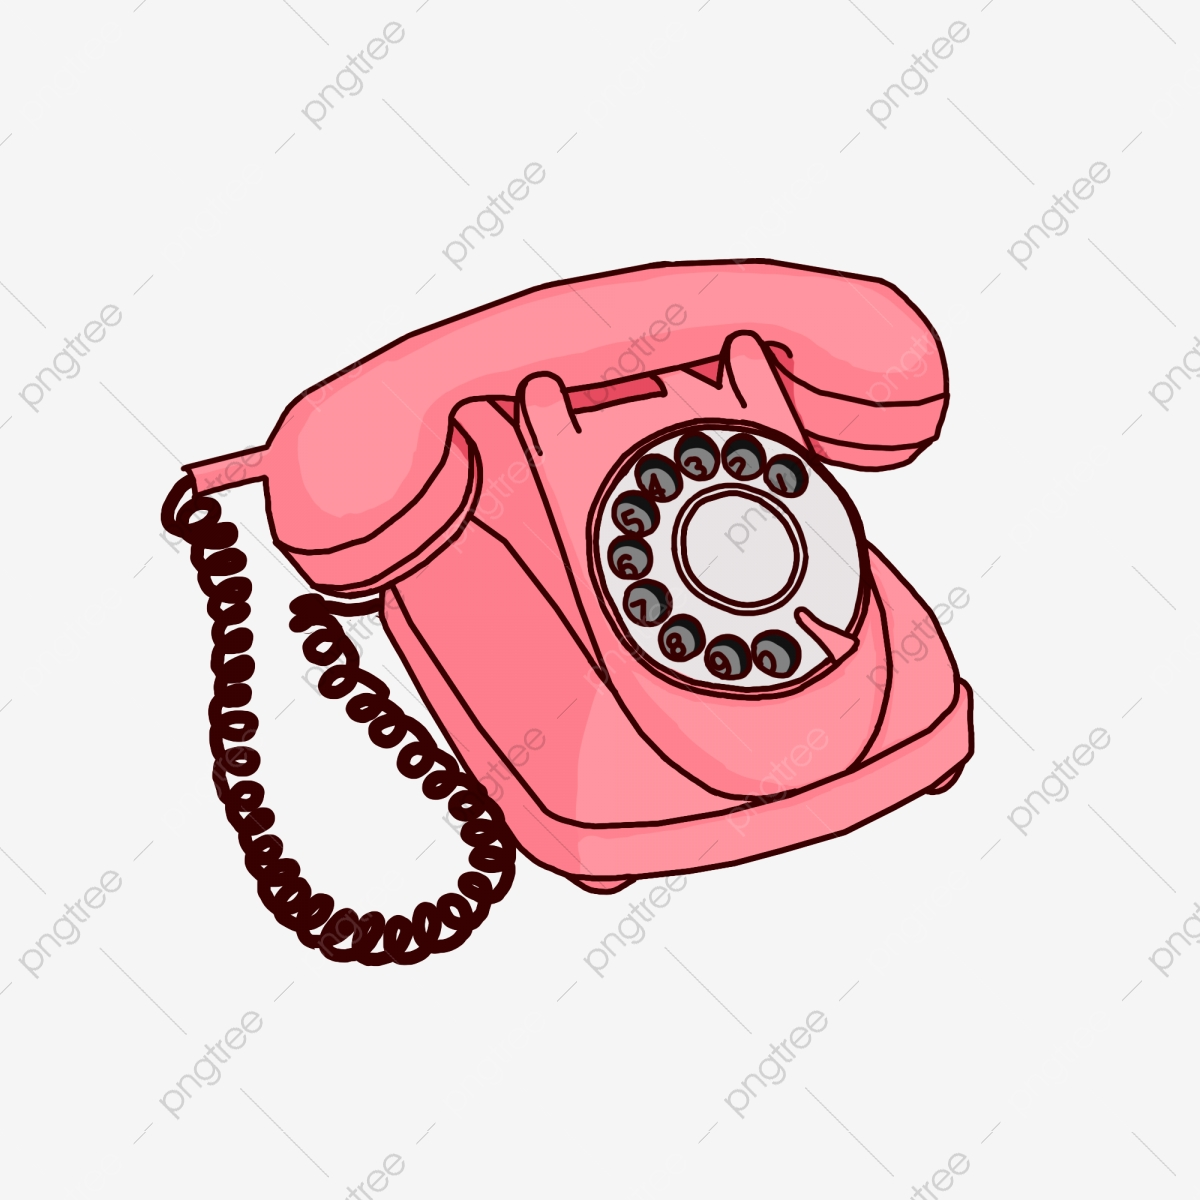 Pink Telephone Clipart , Free Transparent Clipart - ClipartKey